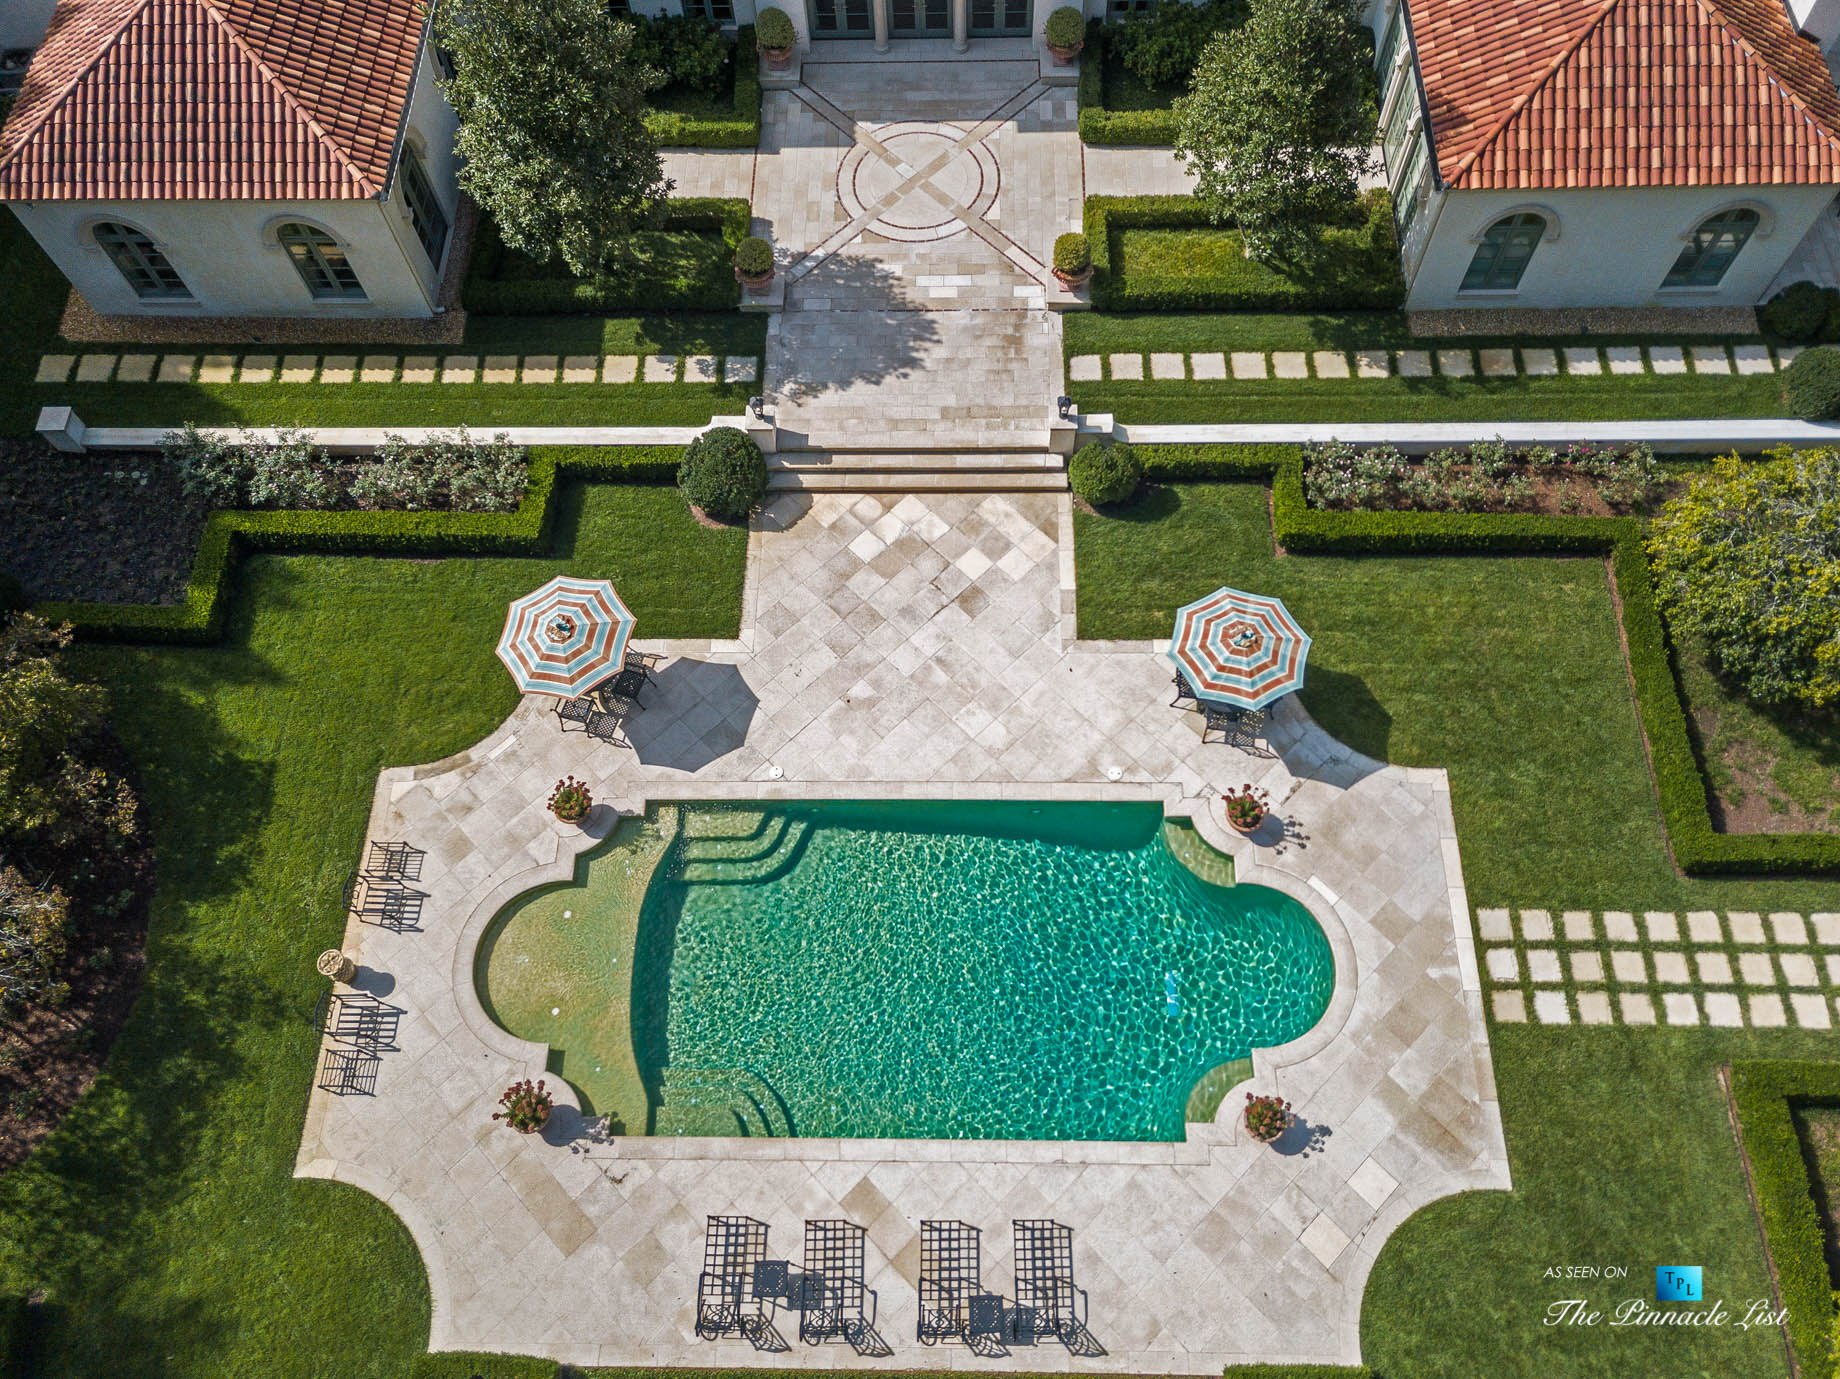 439 Blackland Rd NW, Atlanta, GA, USA – Drone Aerial View Luxurious Property Pool – Luxury Real Estate – Tuxedo Park Mediterranean Mansion Home